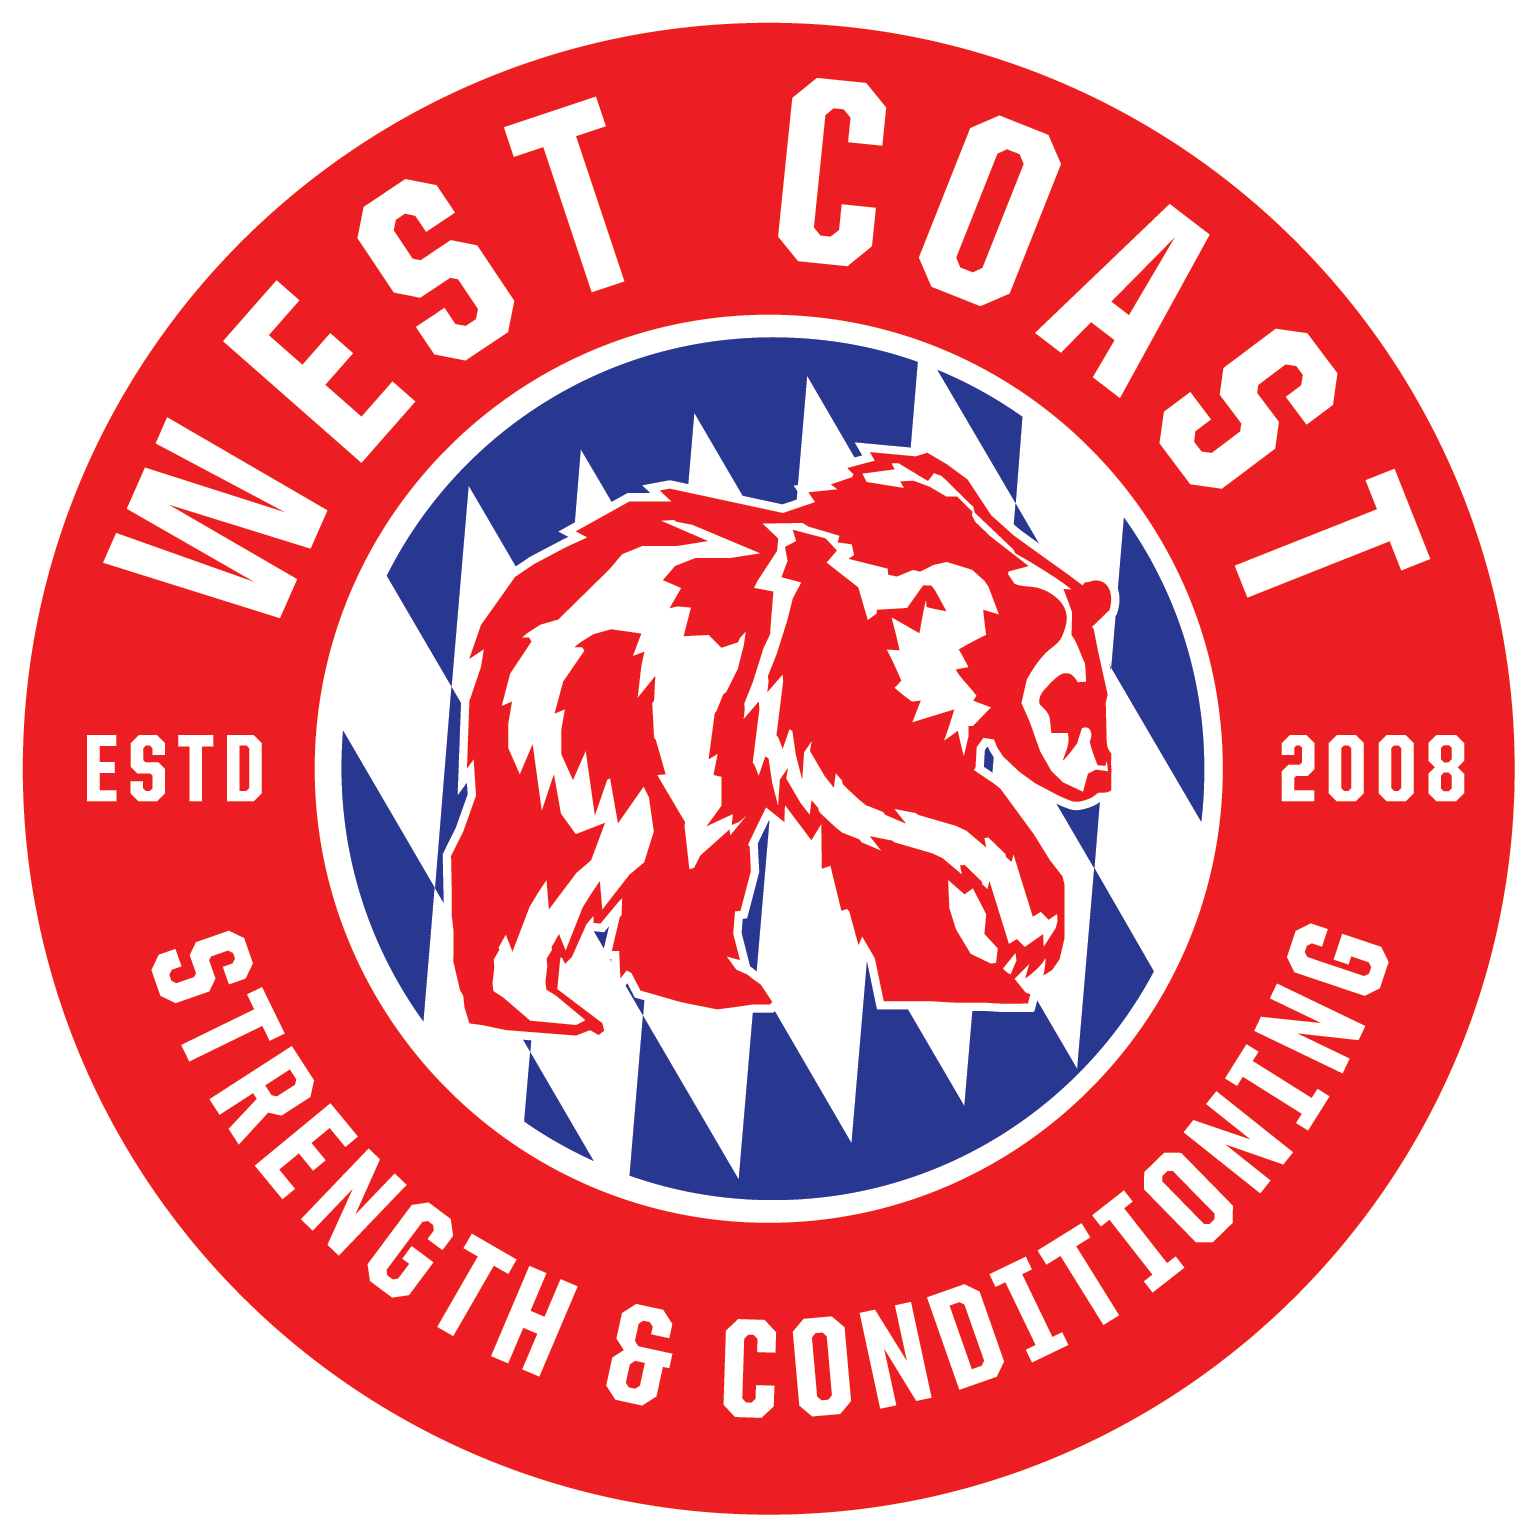 West Coast Strength and Conditioning logo